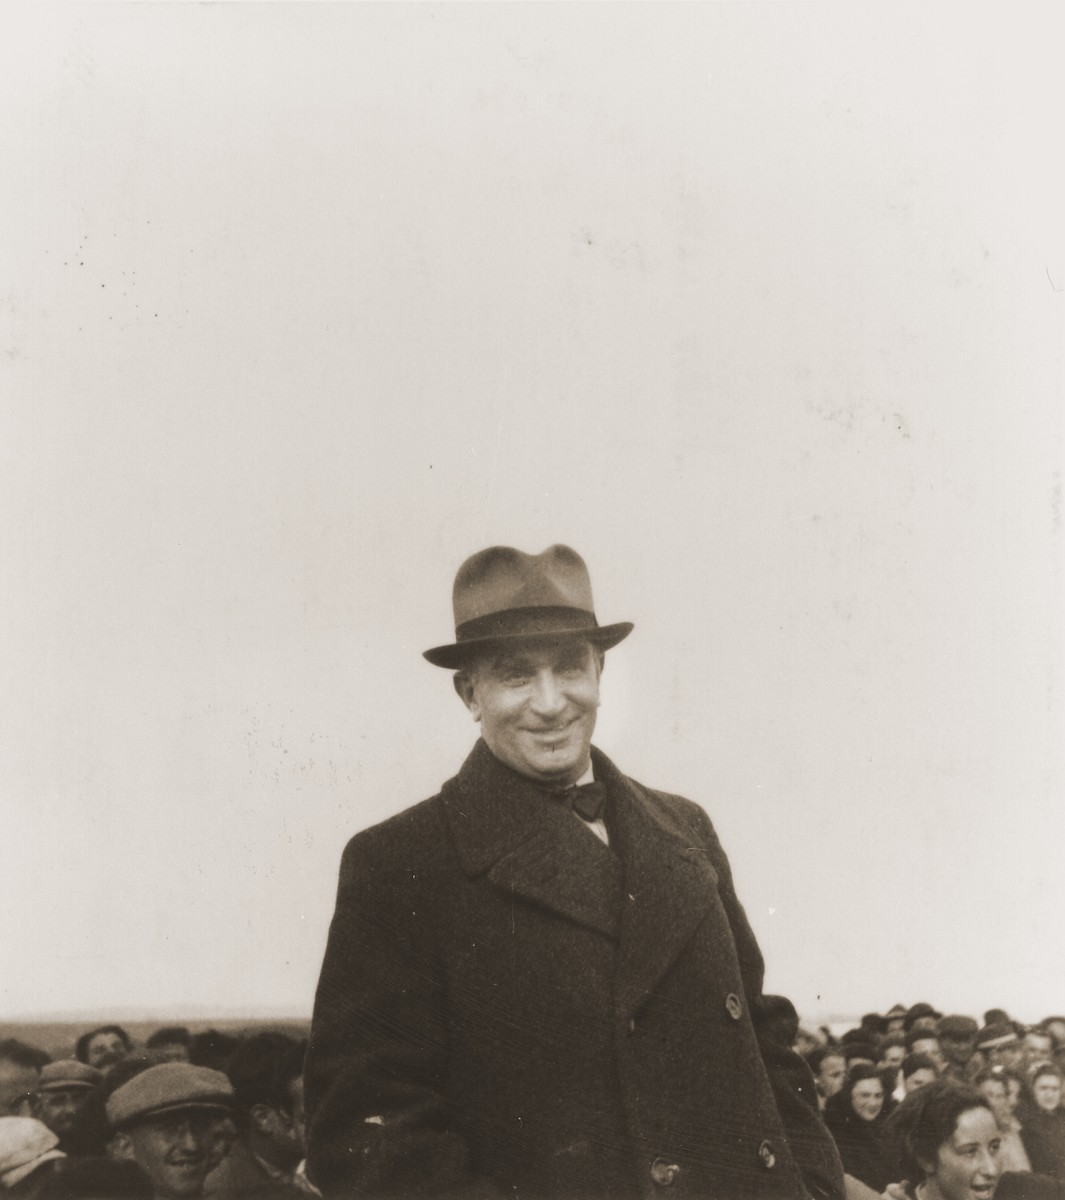 Sime Spitzer, General Secretary of the Federation of Jewish Communities in Yugoslavia, stands among a group of Jewish refugees from the Kladovo transport.